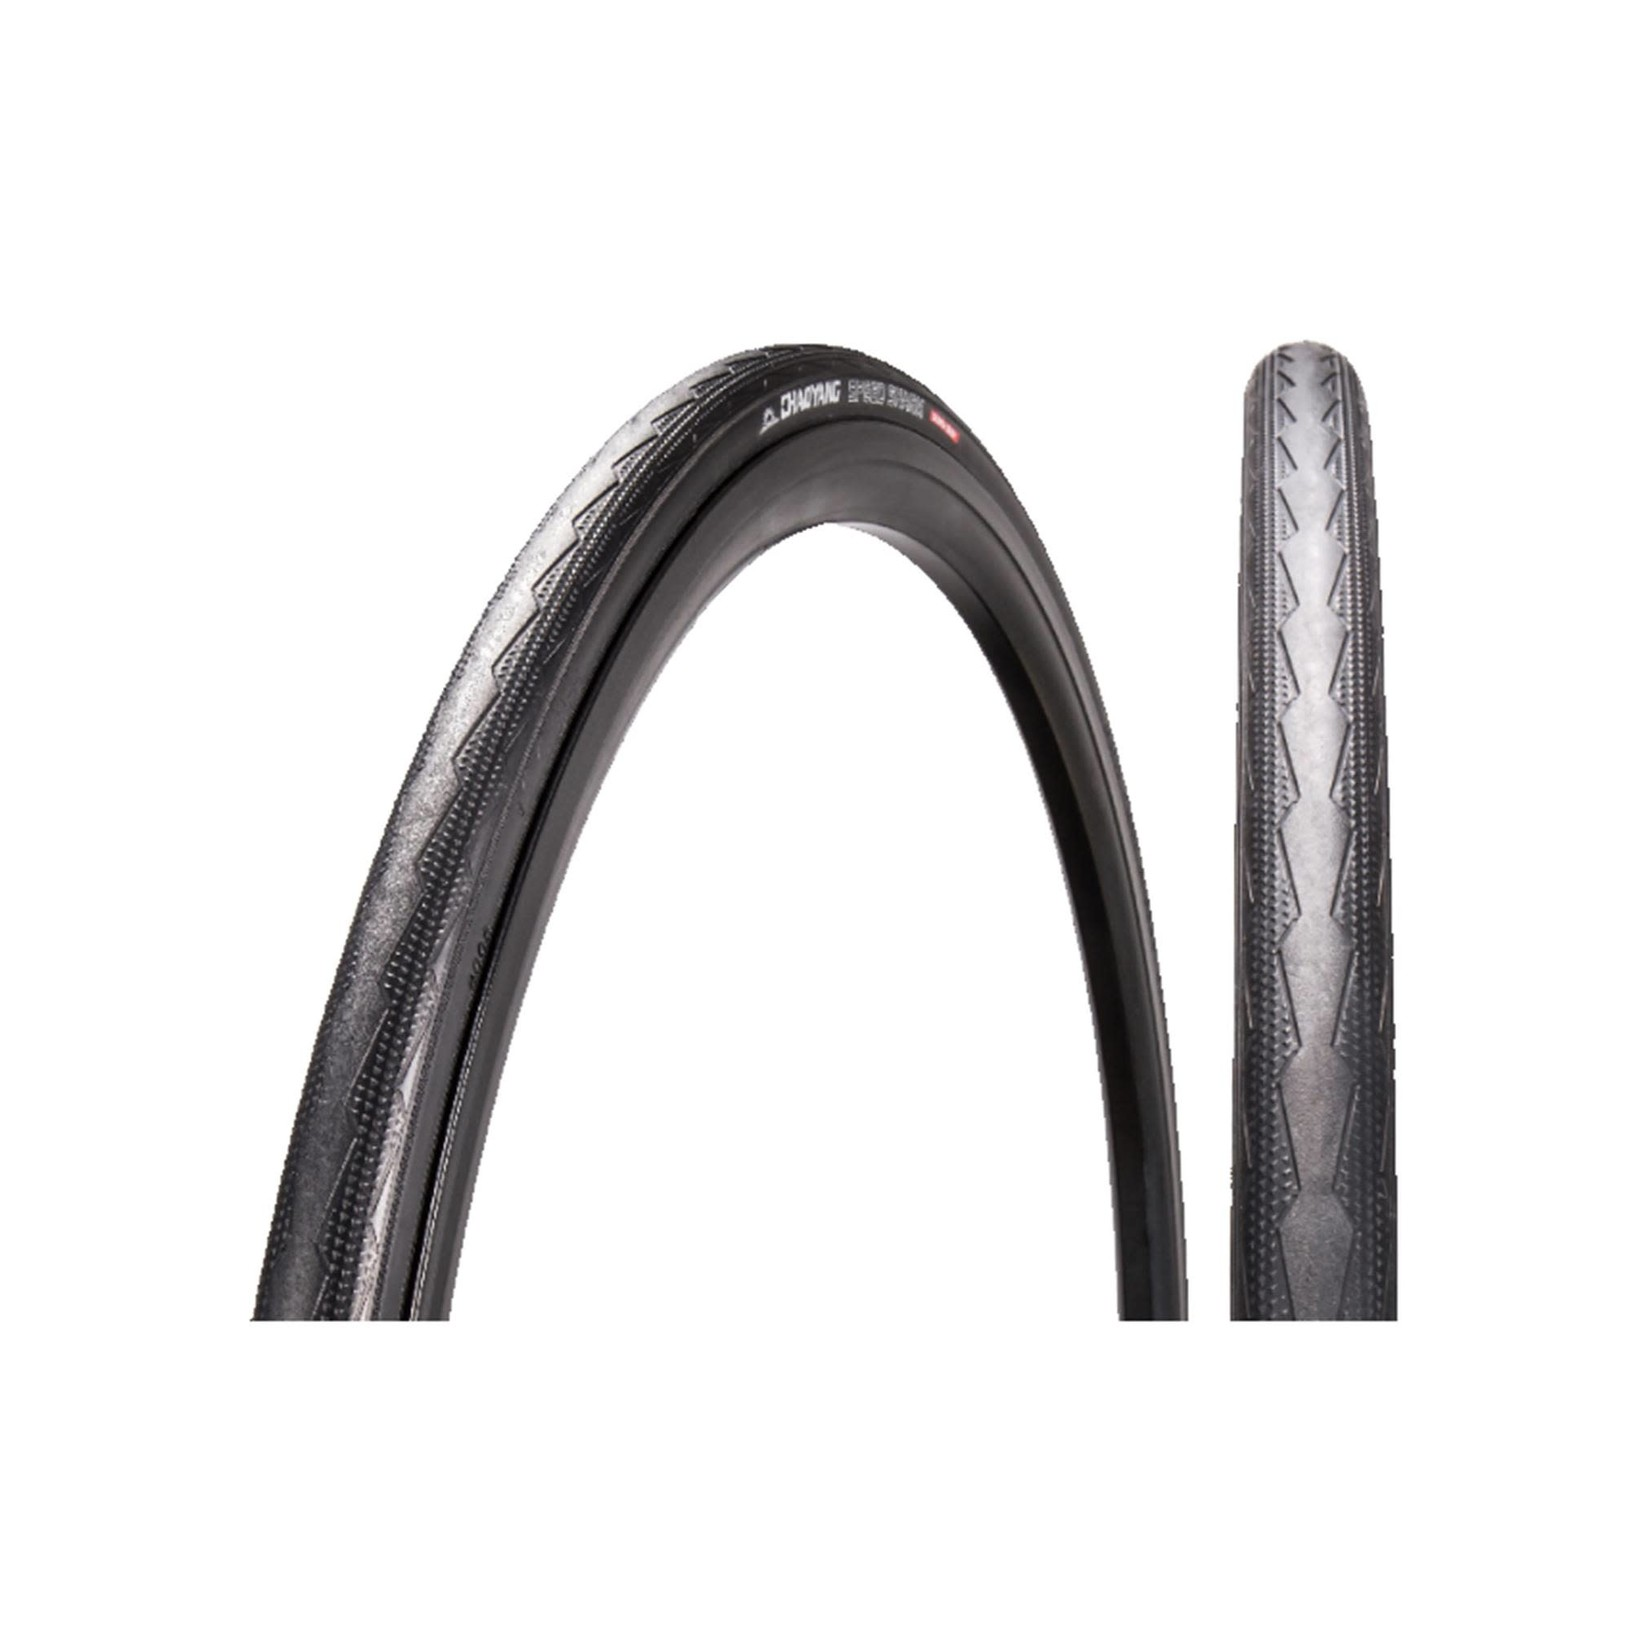 Chaoyang Speed Shark 700 x 25 5mm PP Tyre